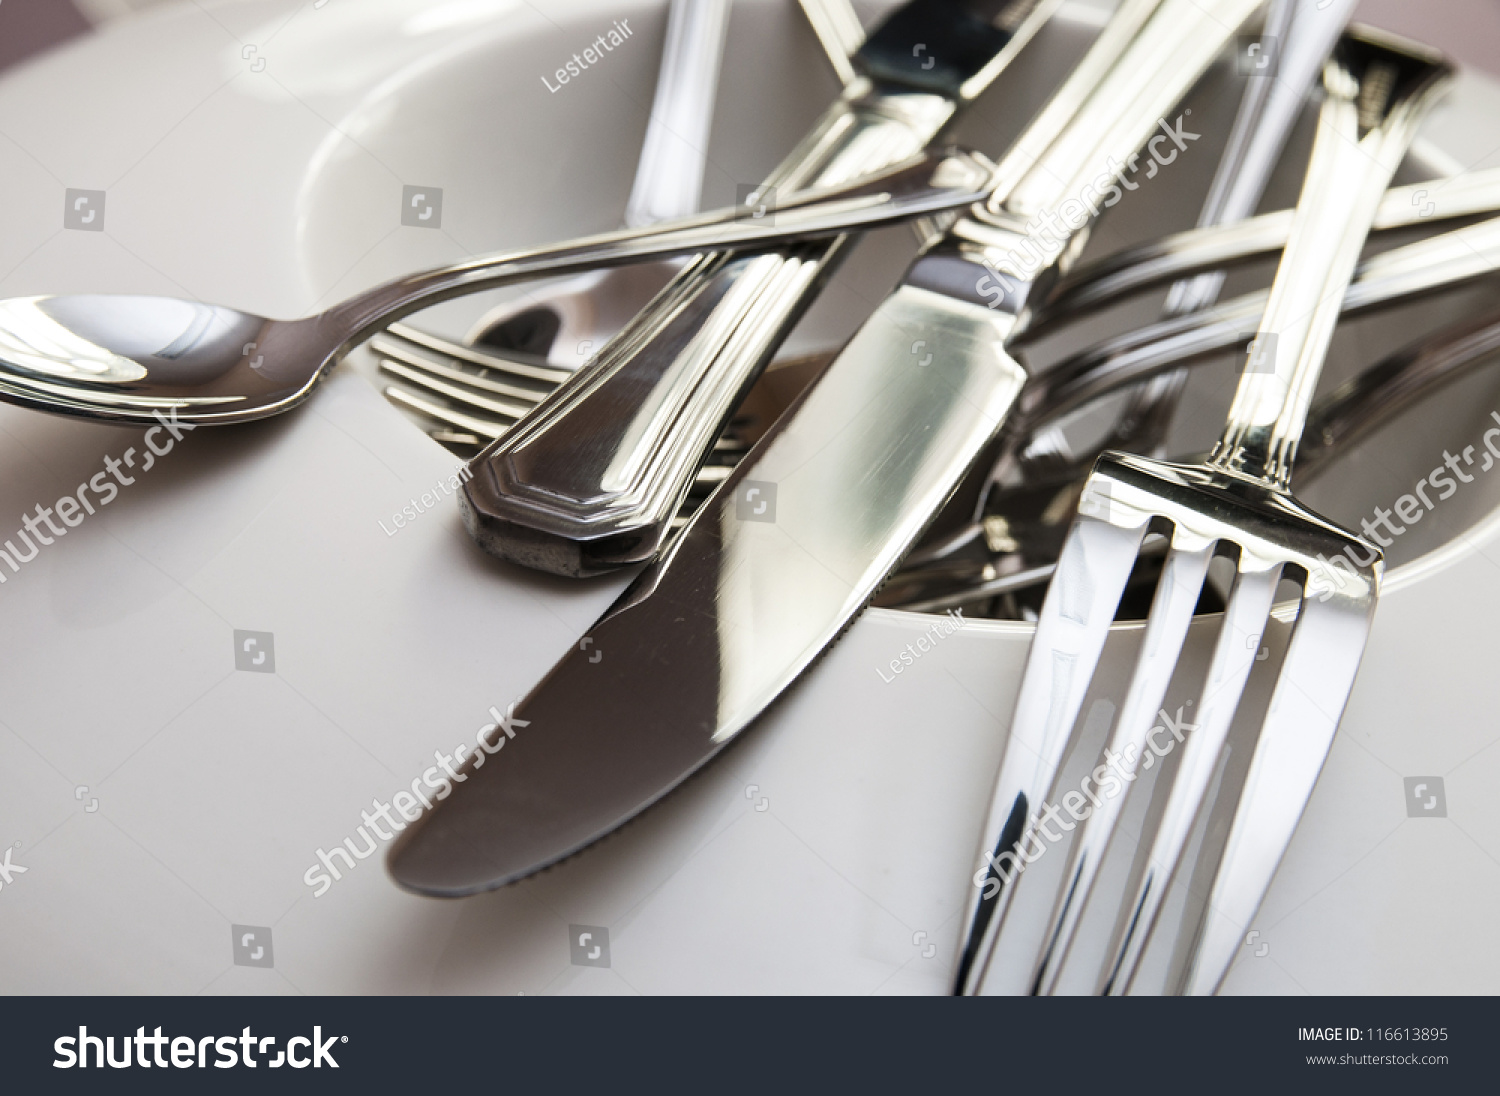 Spoons Forks Knives Set Cutlery Set Of Metal Spoons Forks And Knives Stock Photo